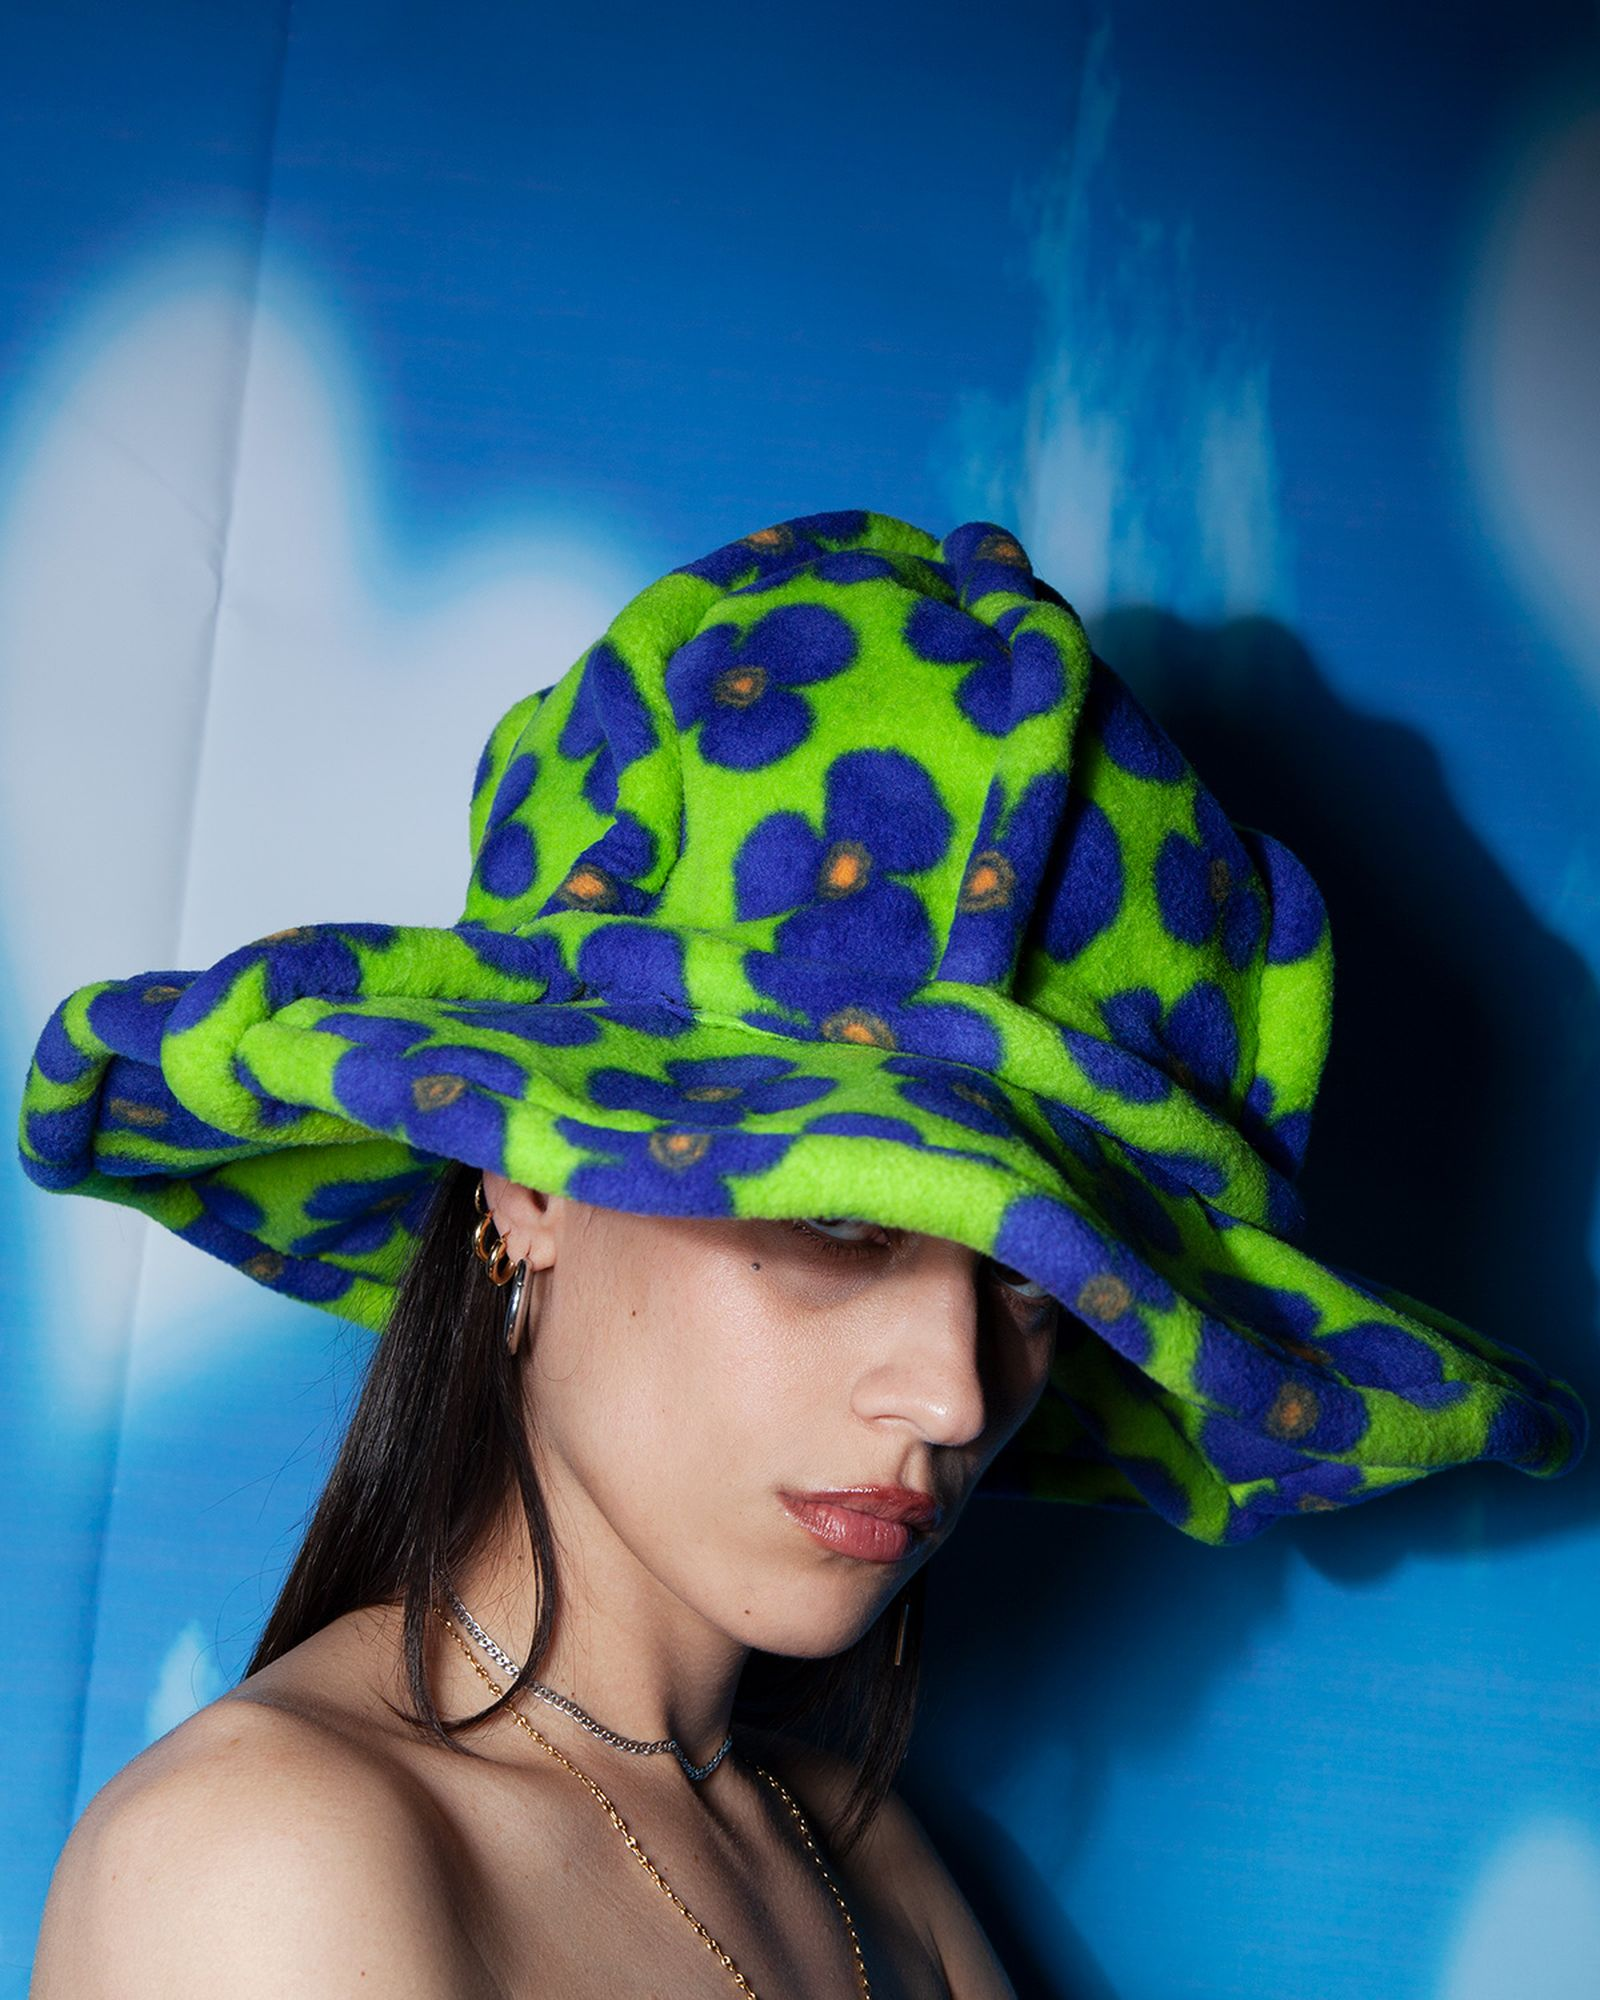 Hat BENNY ANDALLO, All jewellery Chloe's own